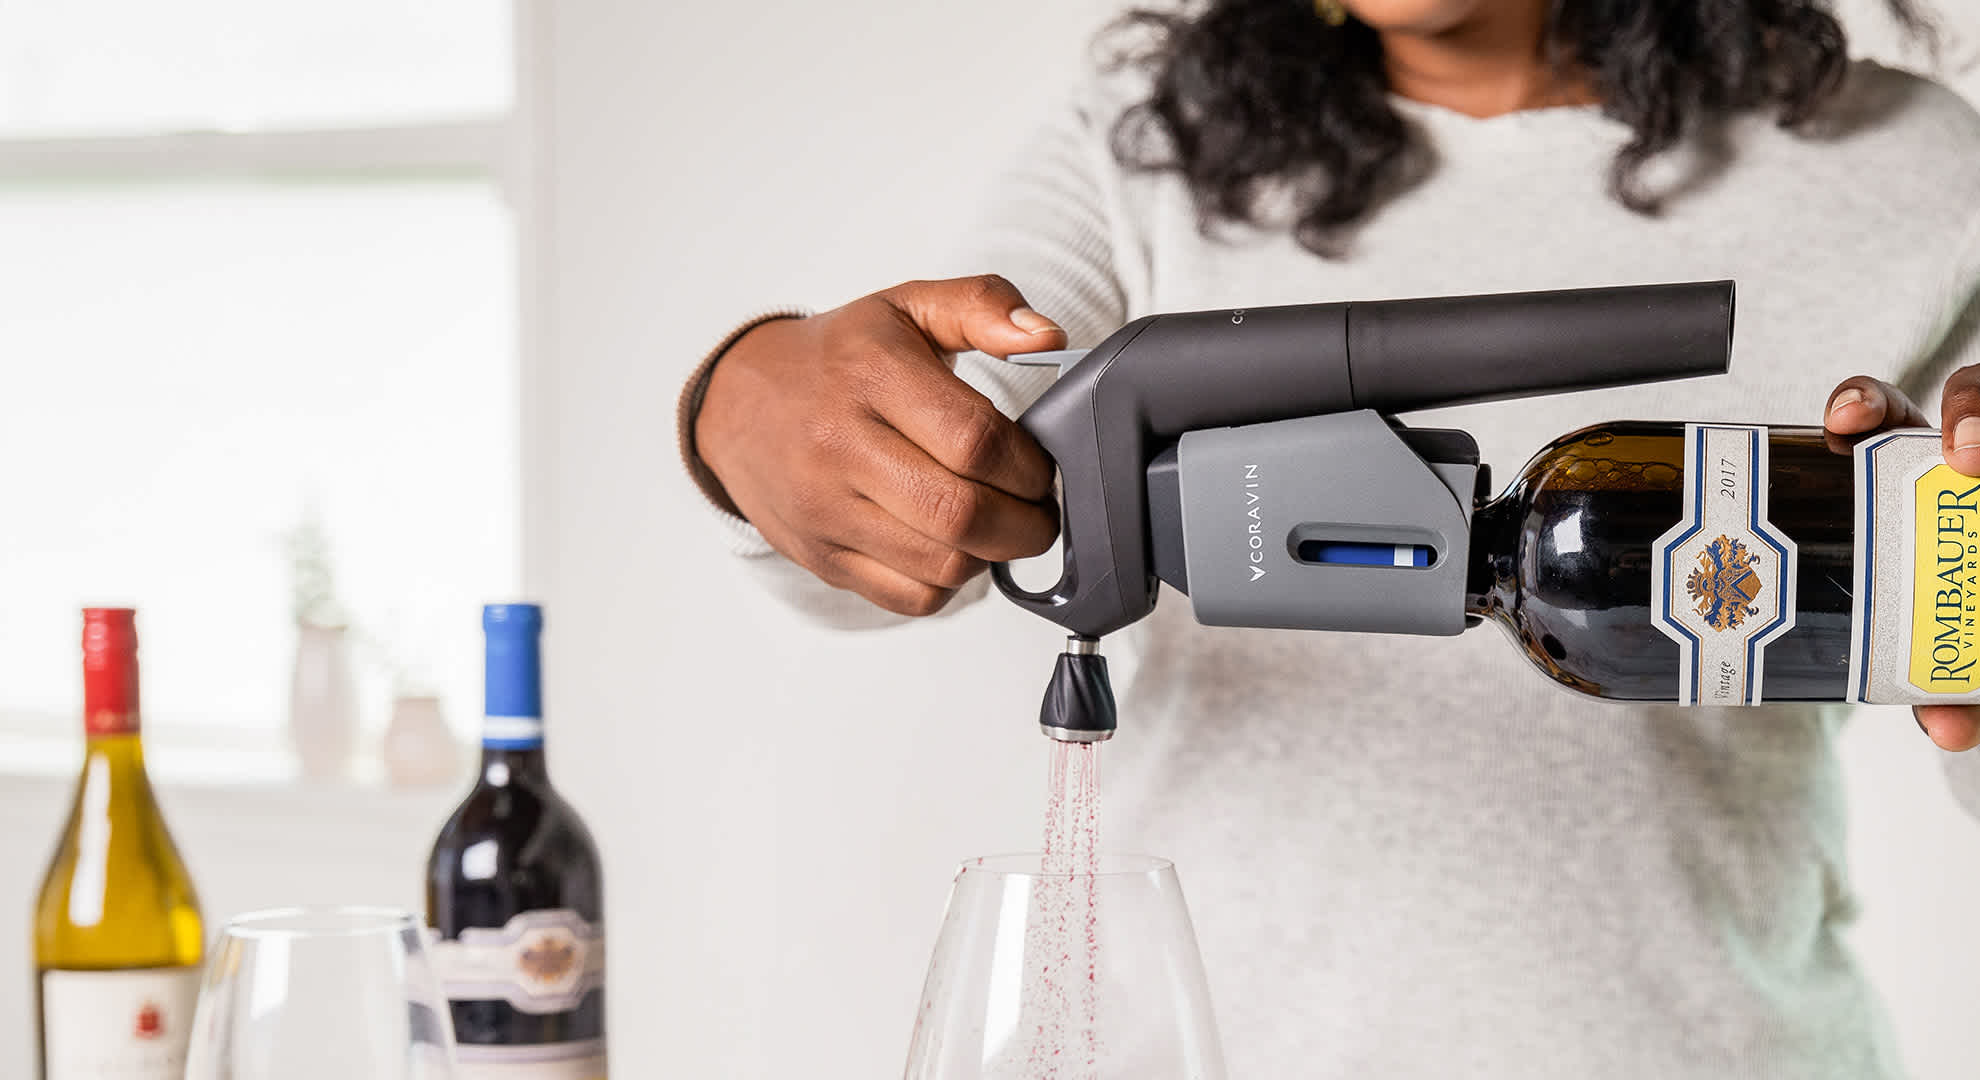 pouring red wine with the Coravin Aerator and Model Three Wine Preservation System